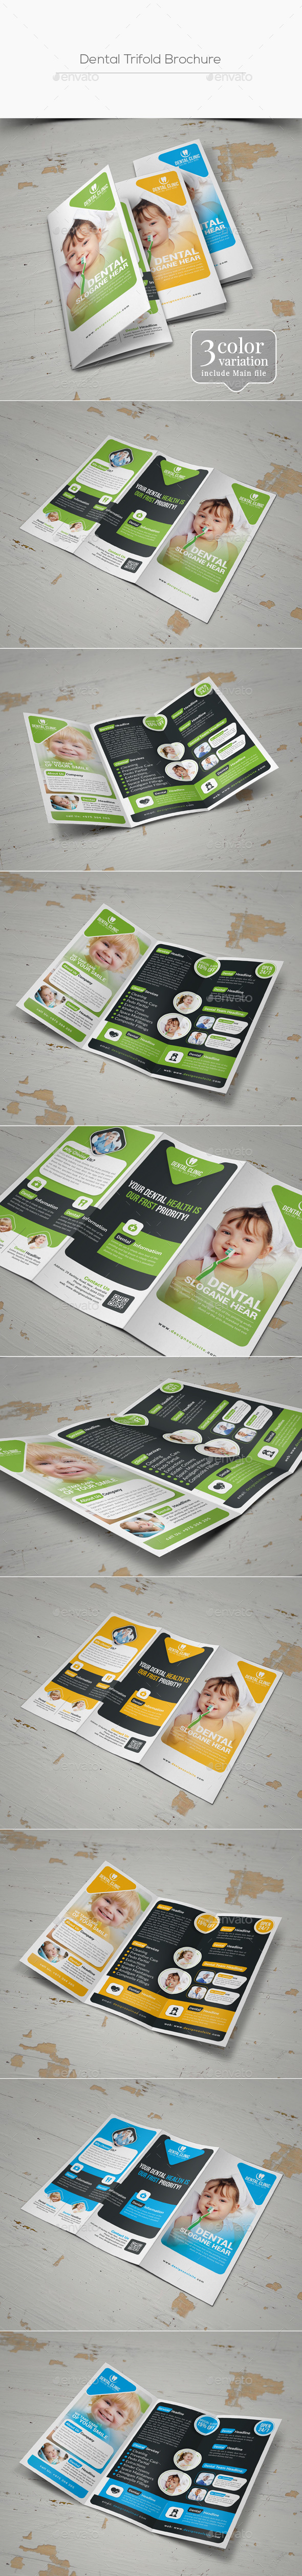 Dental Trifold Brochure - Informational Brochures